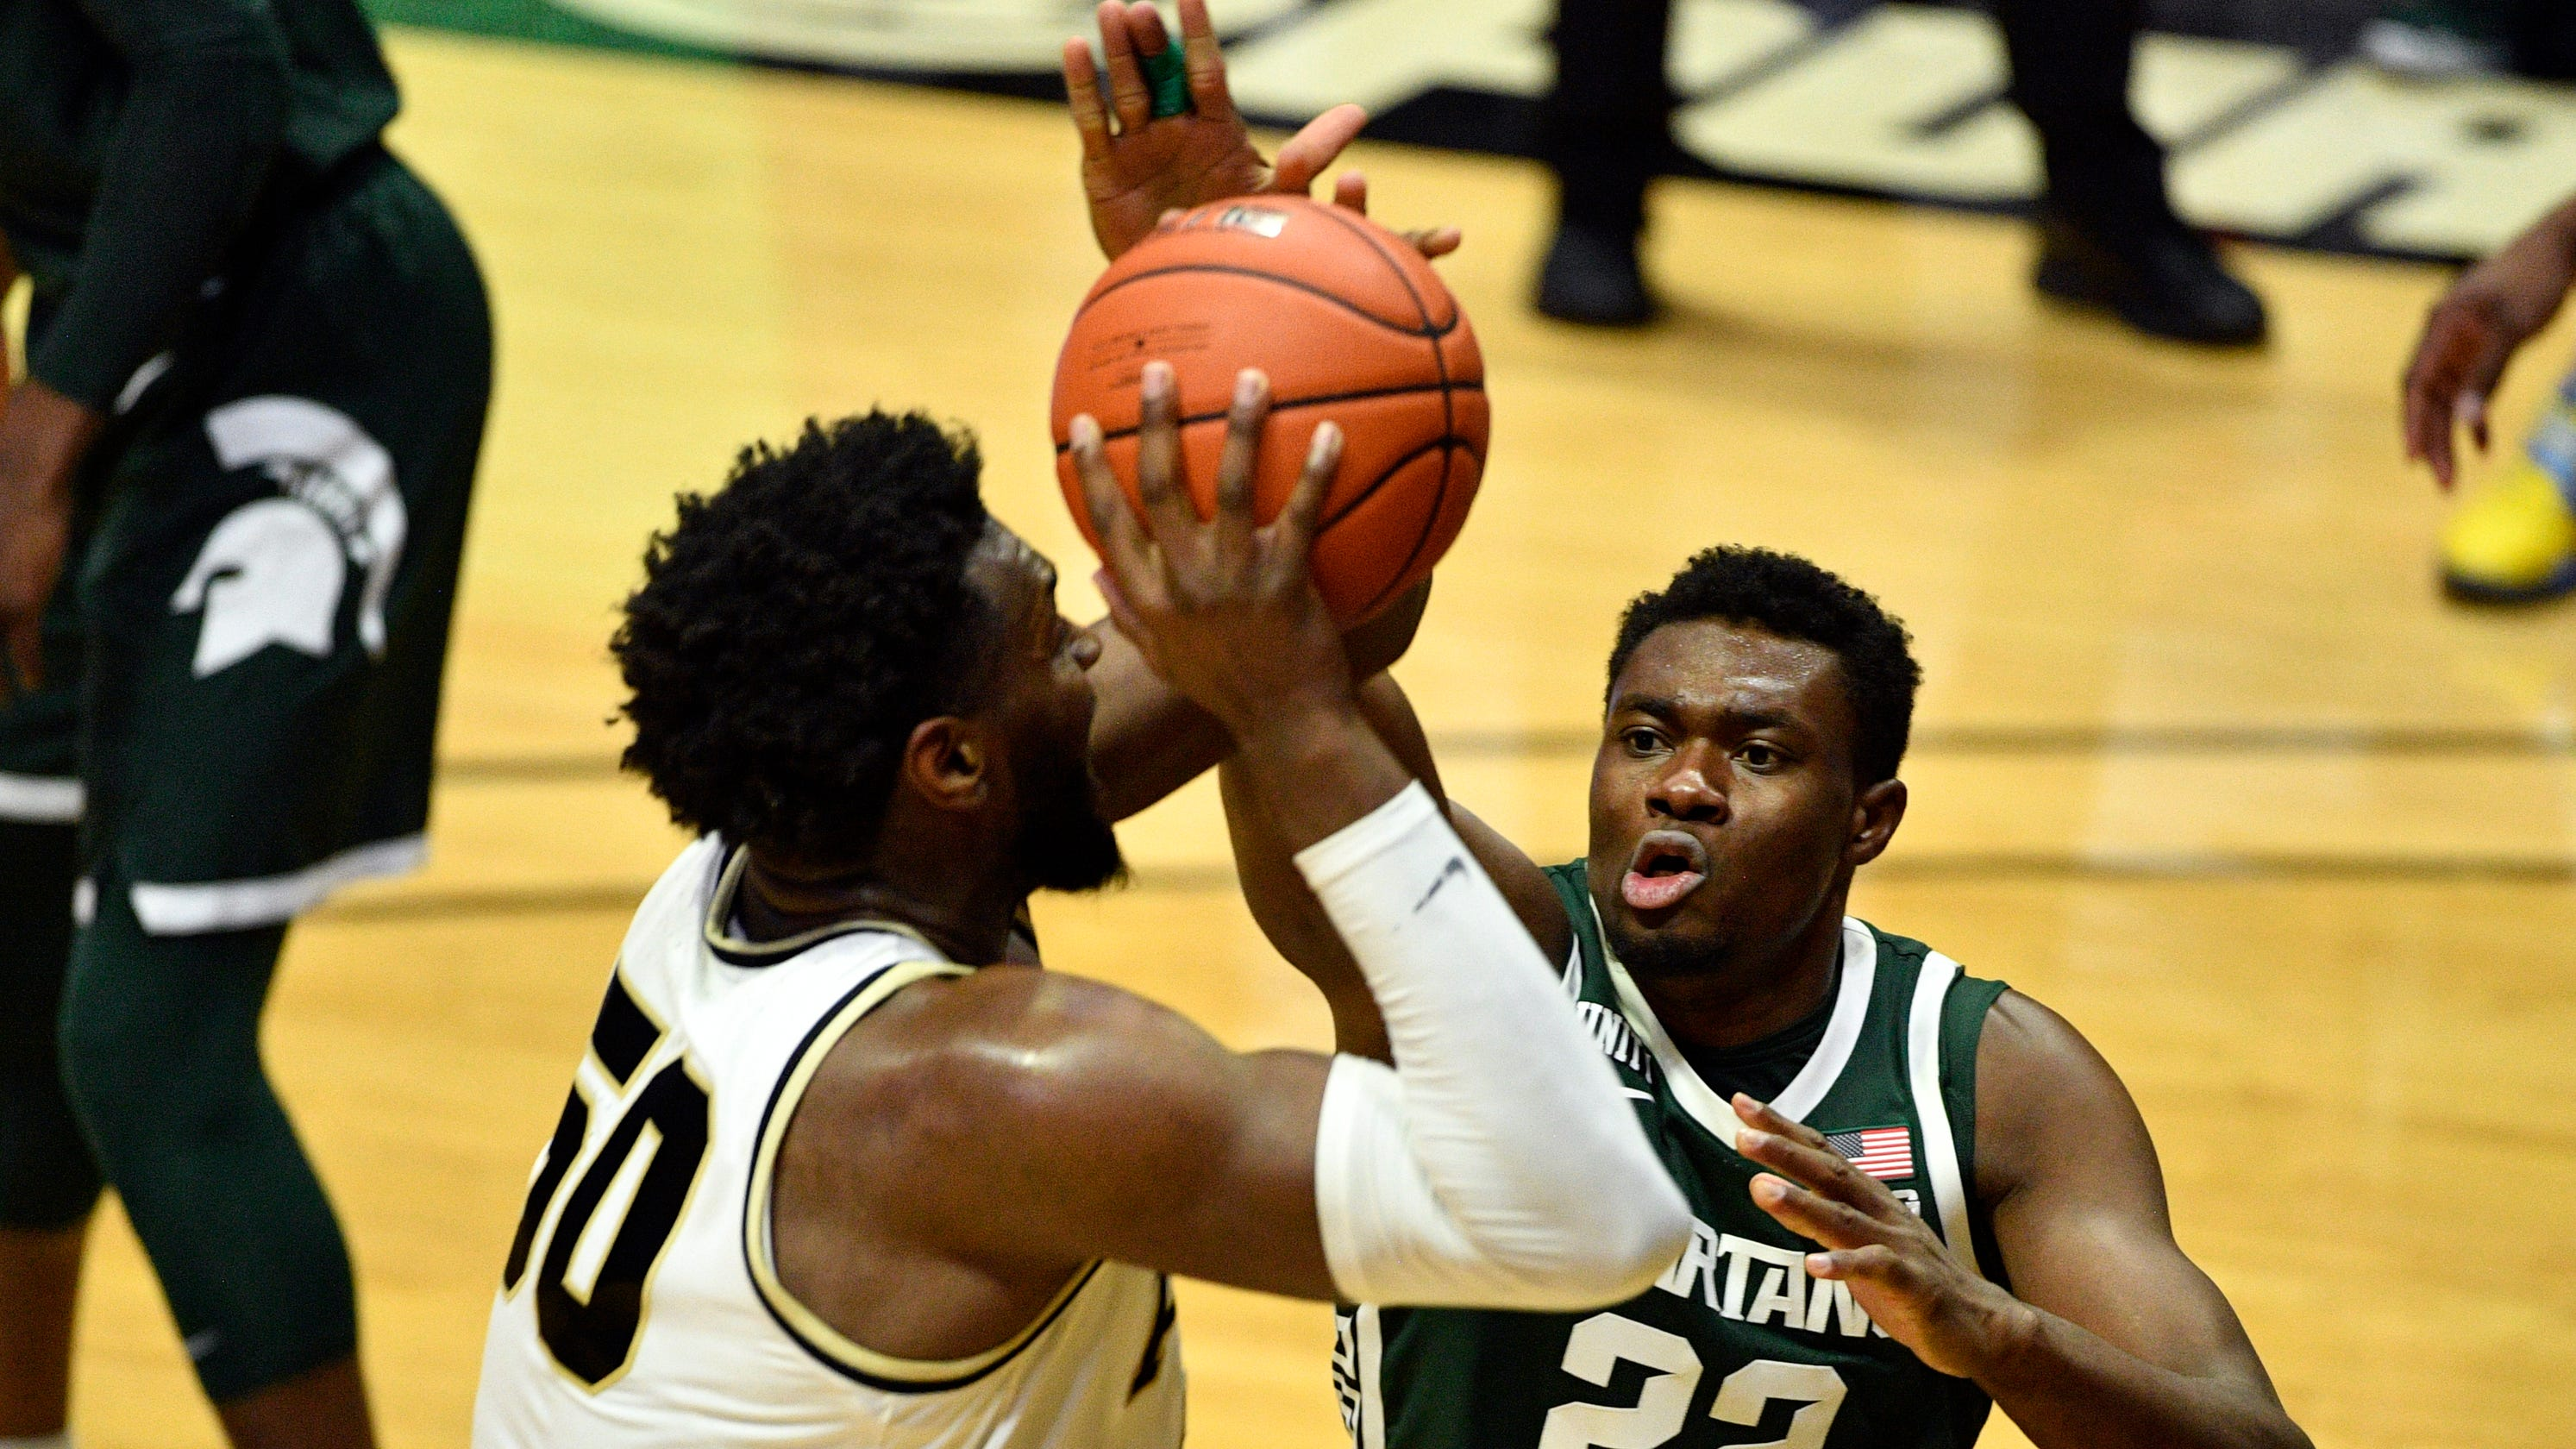 Michigan State basketball tumble continues in 75-65 loss to Purdue; NCAAs look like a dream - Detroit Free Press